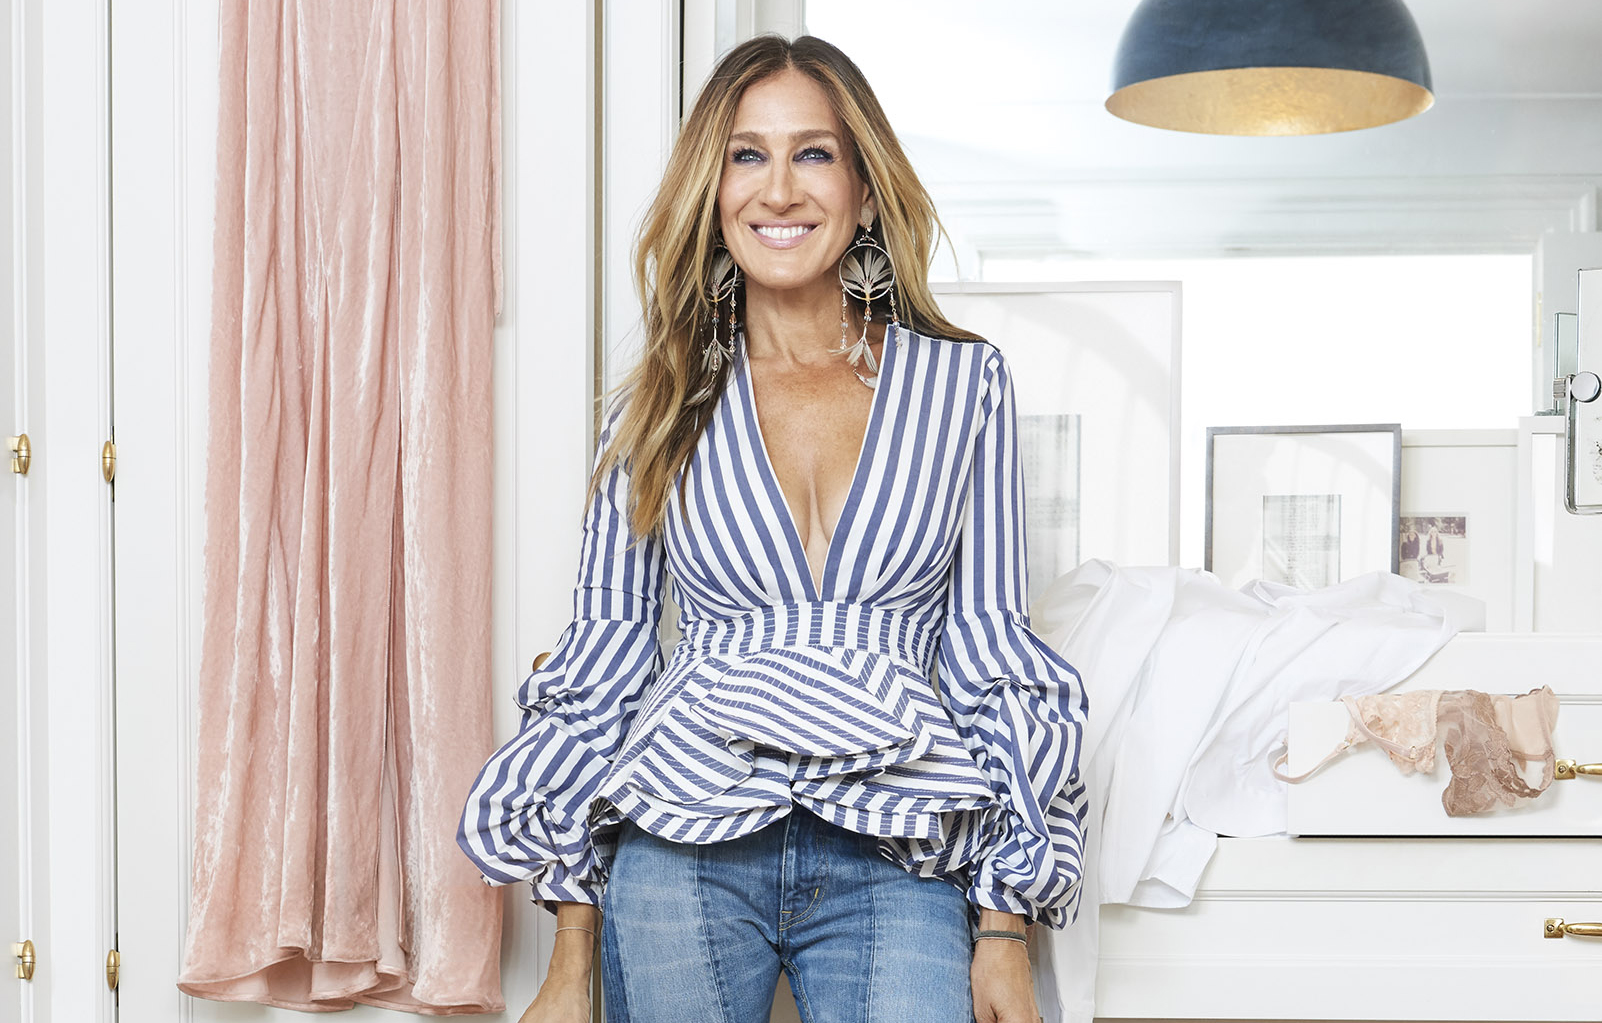 c-crop-sjp-x-net-a-porter-exclusive.jpg